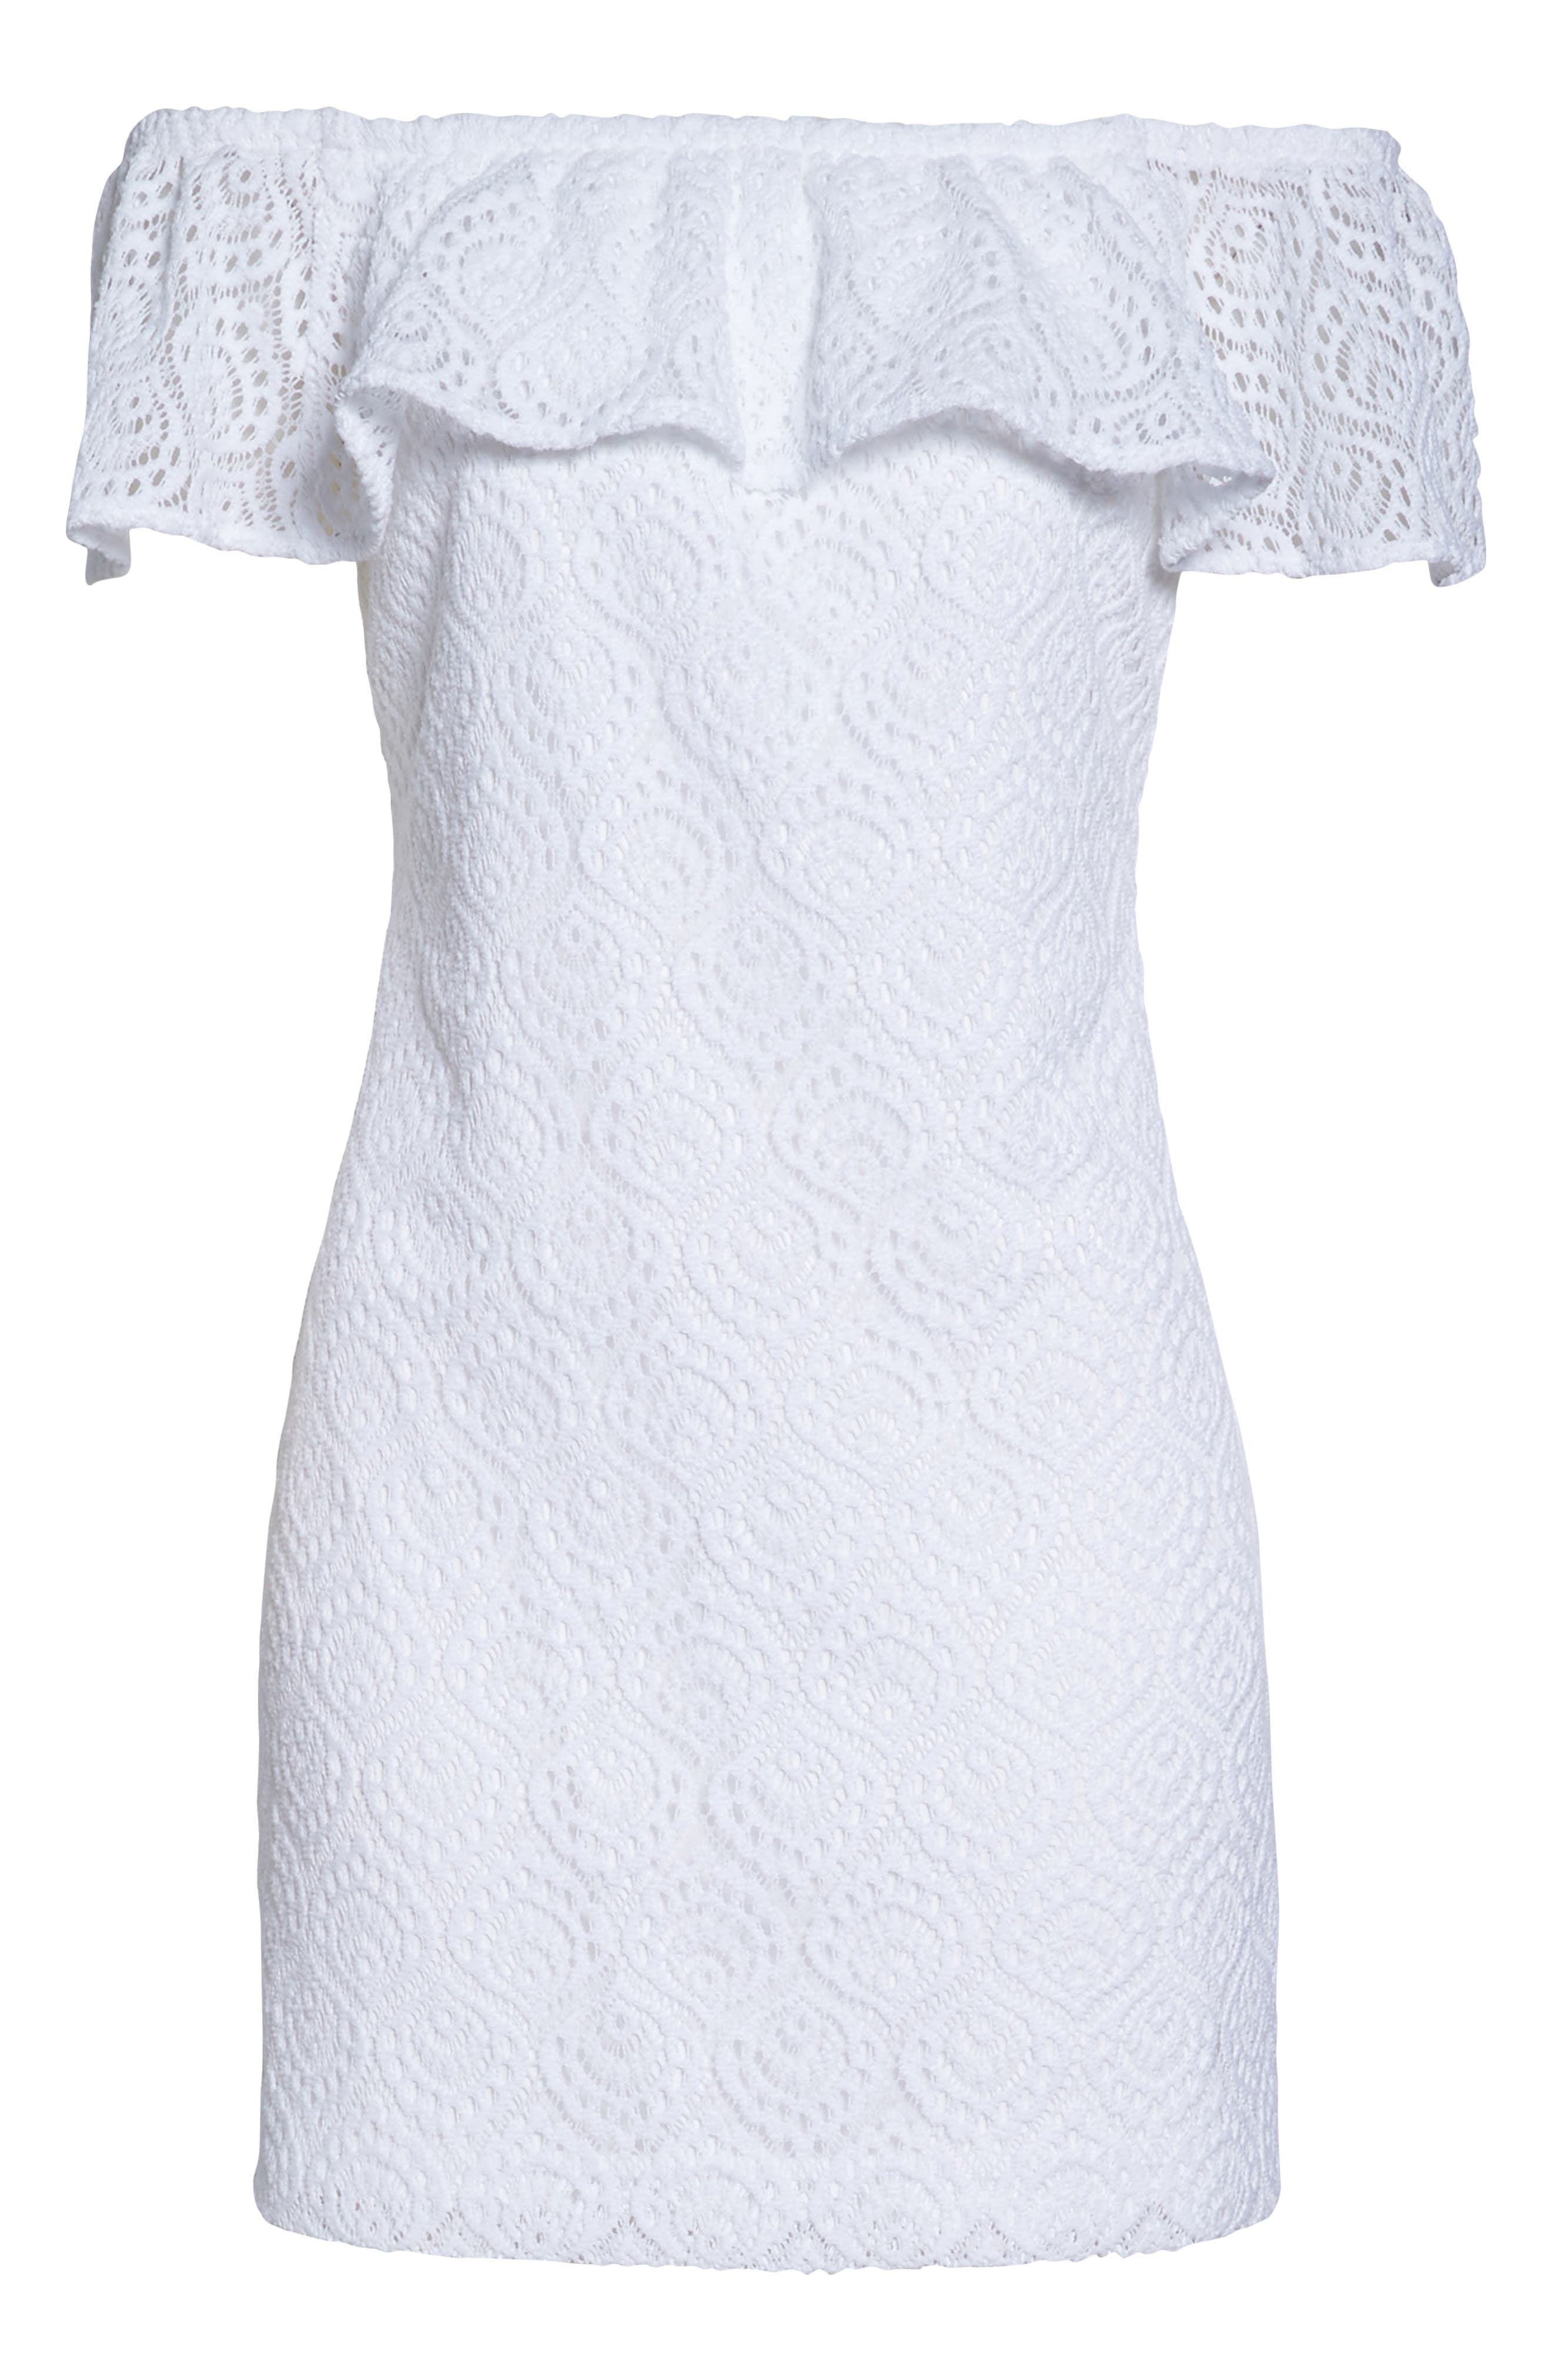 La Fortuna Off the Shoulder Lace Dress,                             Alternate thumbnail 6, color,                             Resort White Gypsea Lace